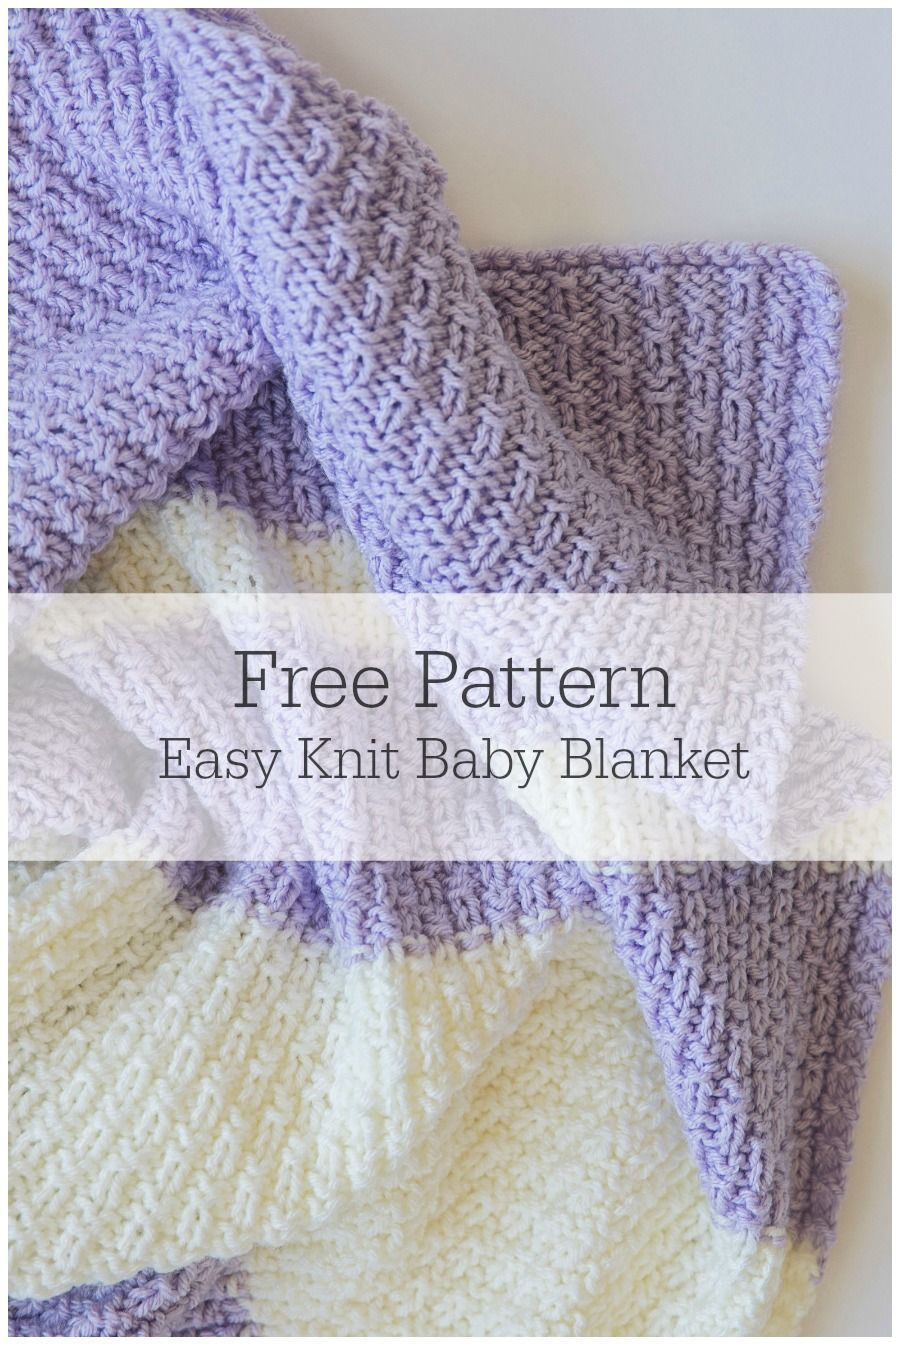 Knitted Squares Patterns Free Blanket Knitted Patterns Squares Beginner Knit Ba Empoto